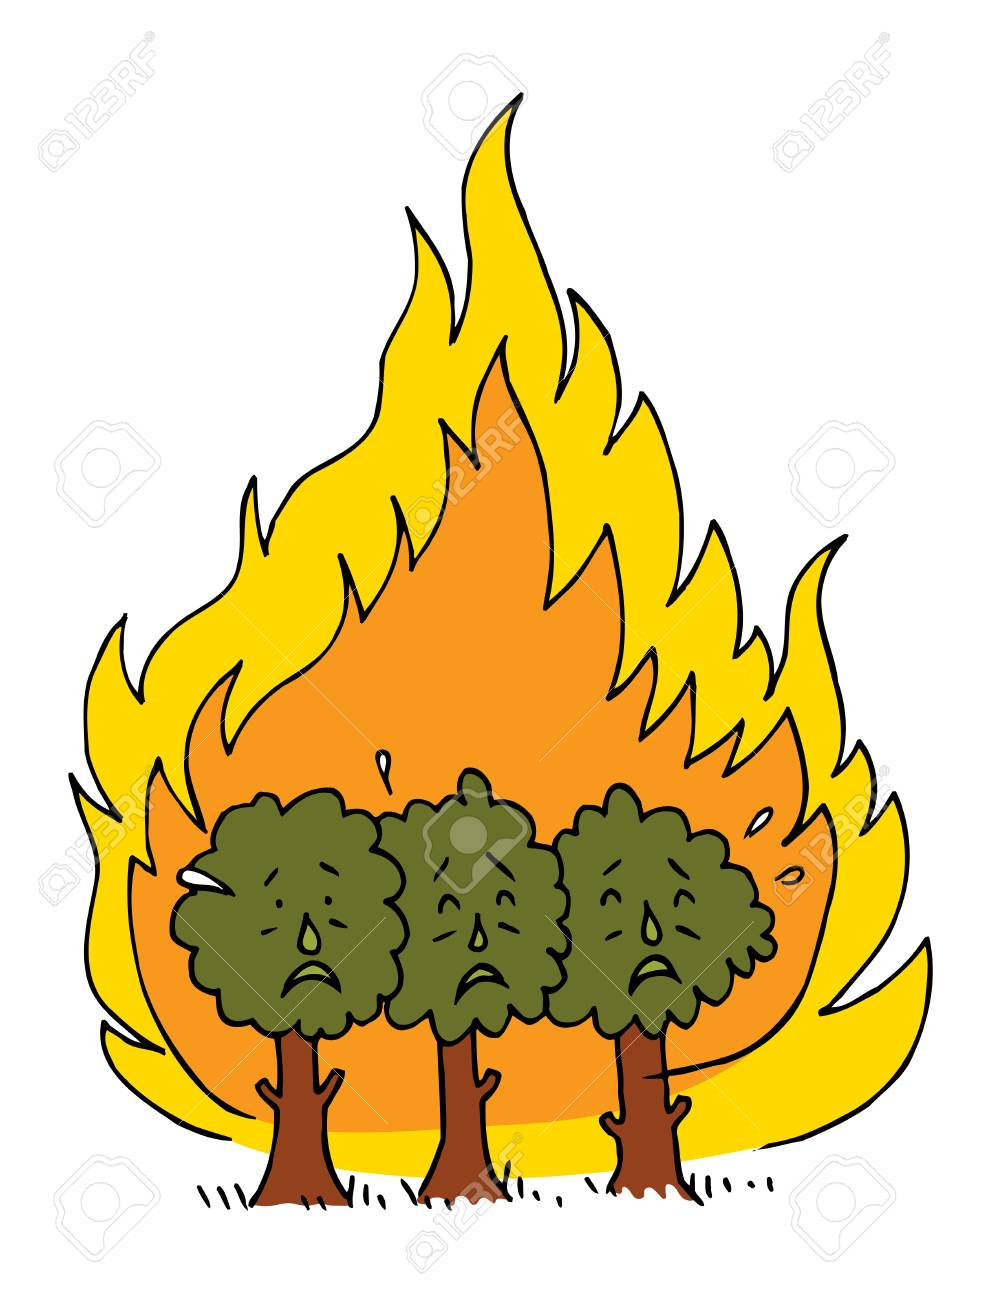 Forest fire clipart 5 » Clipart Station.